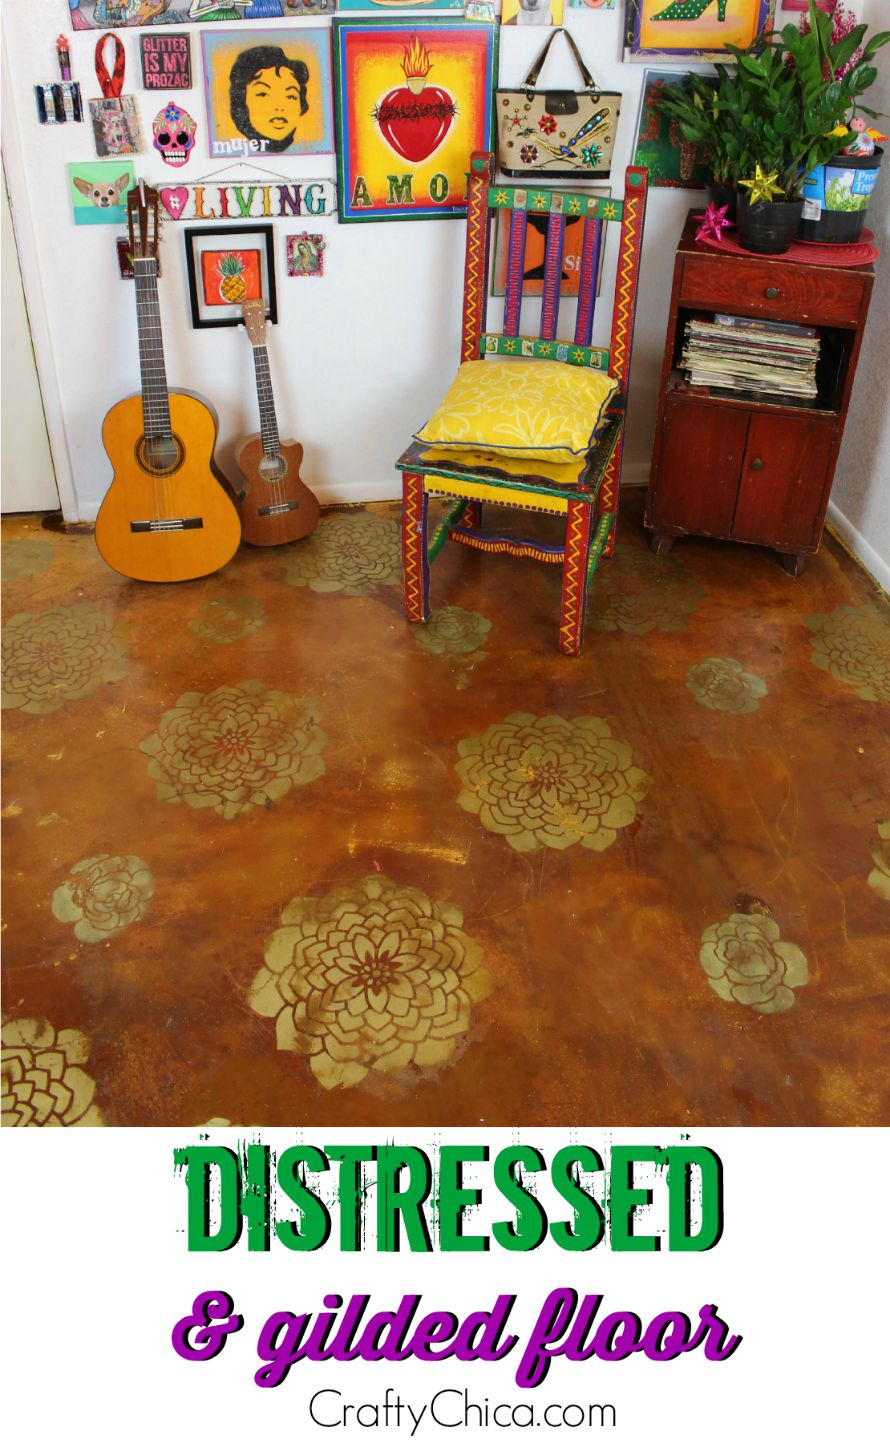 Create the look of a distrssed and gilded floor by CraftyChica.com